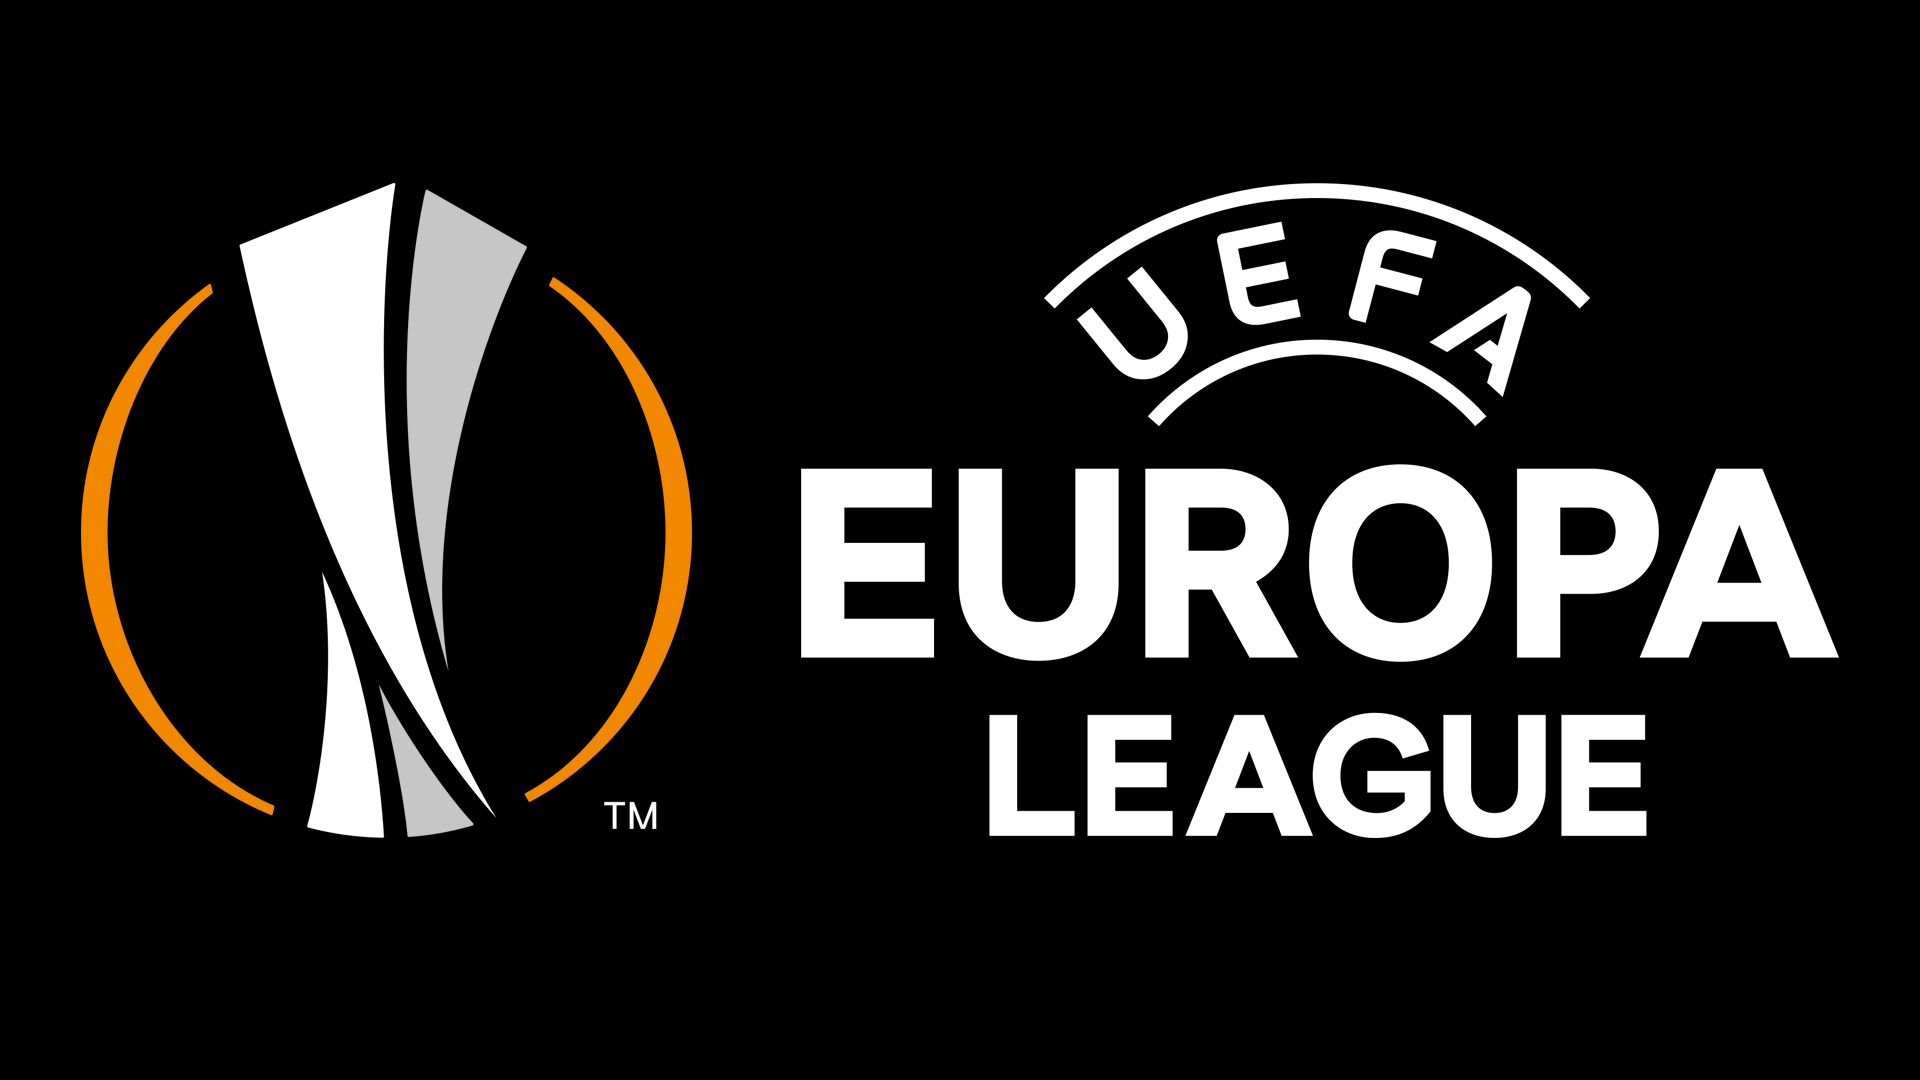 Uefa.com is the official site of uefa, the union of european football associations, and the governing body of football in europe. UEFA Europa League 2020-2021 Match Schedule On CBS All Access